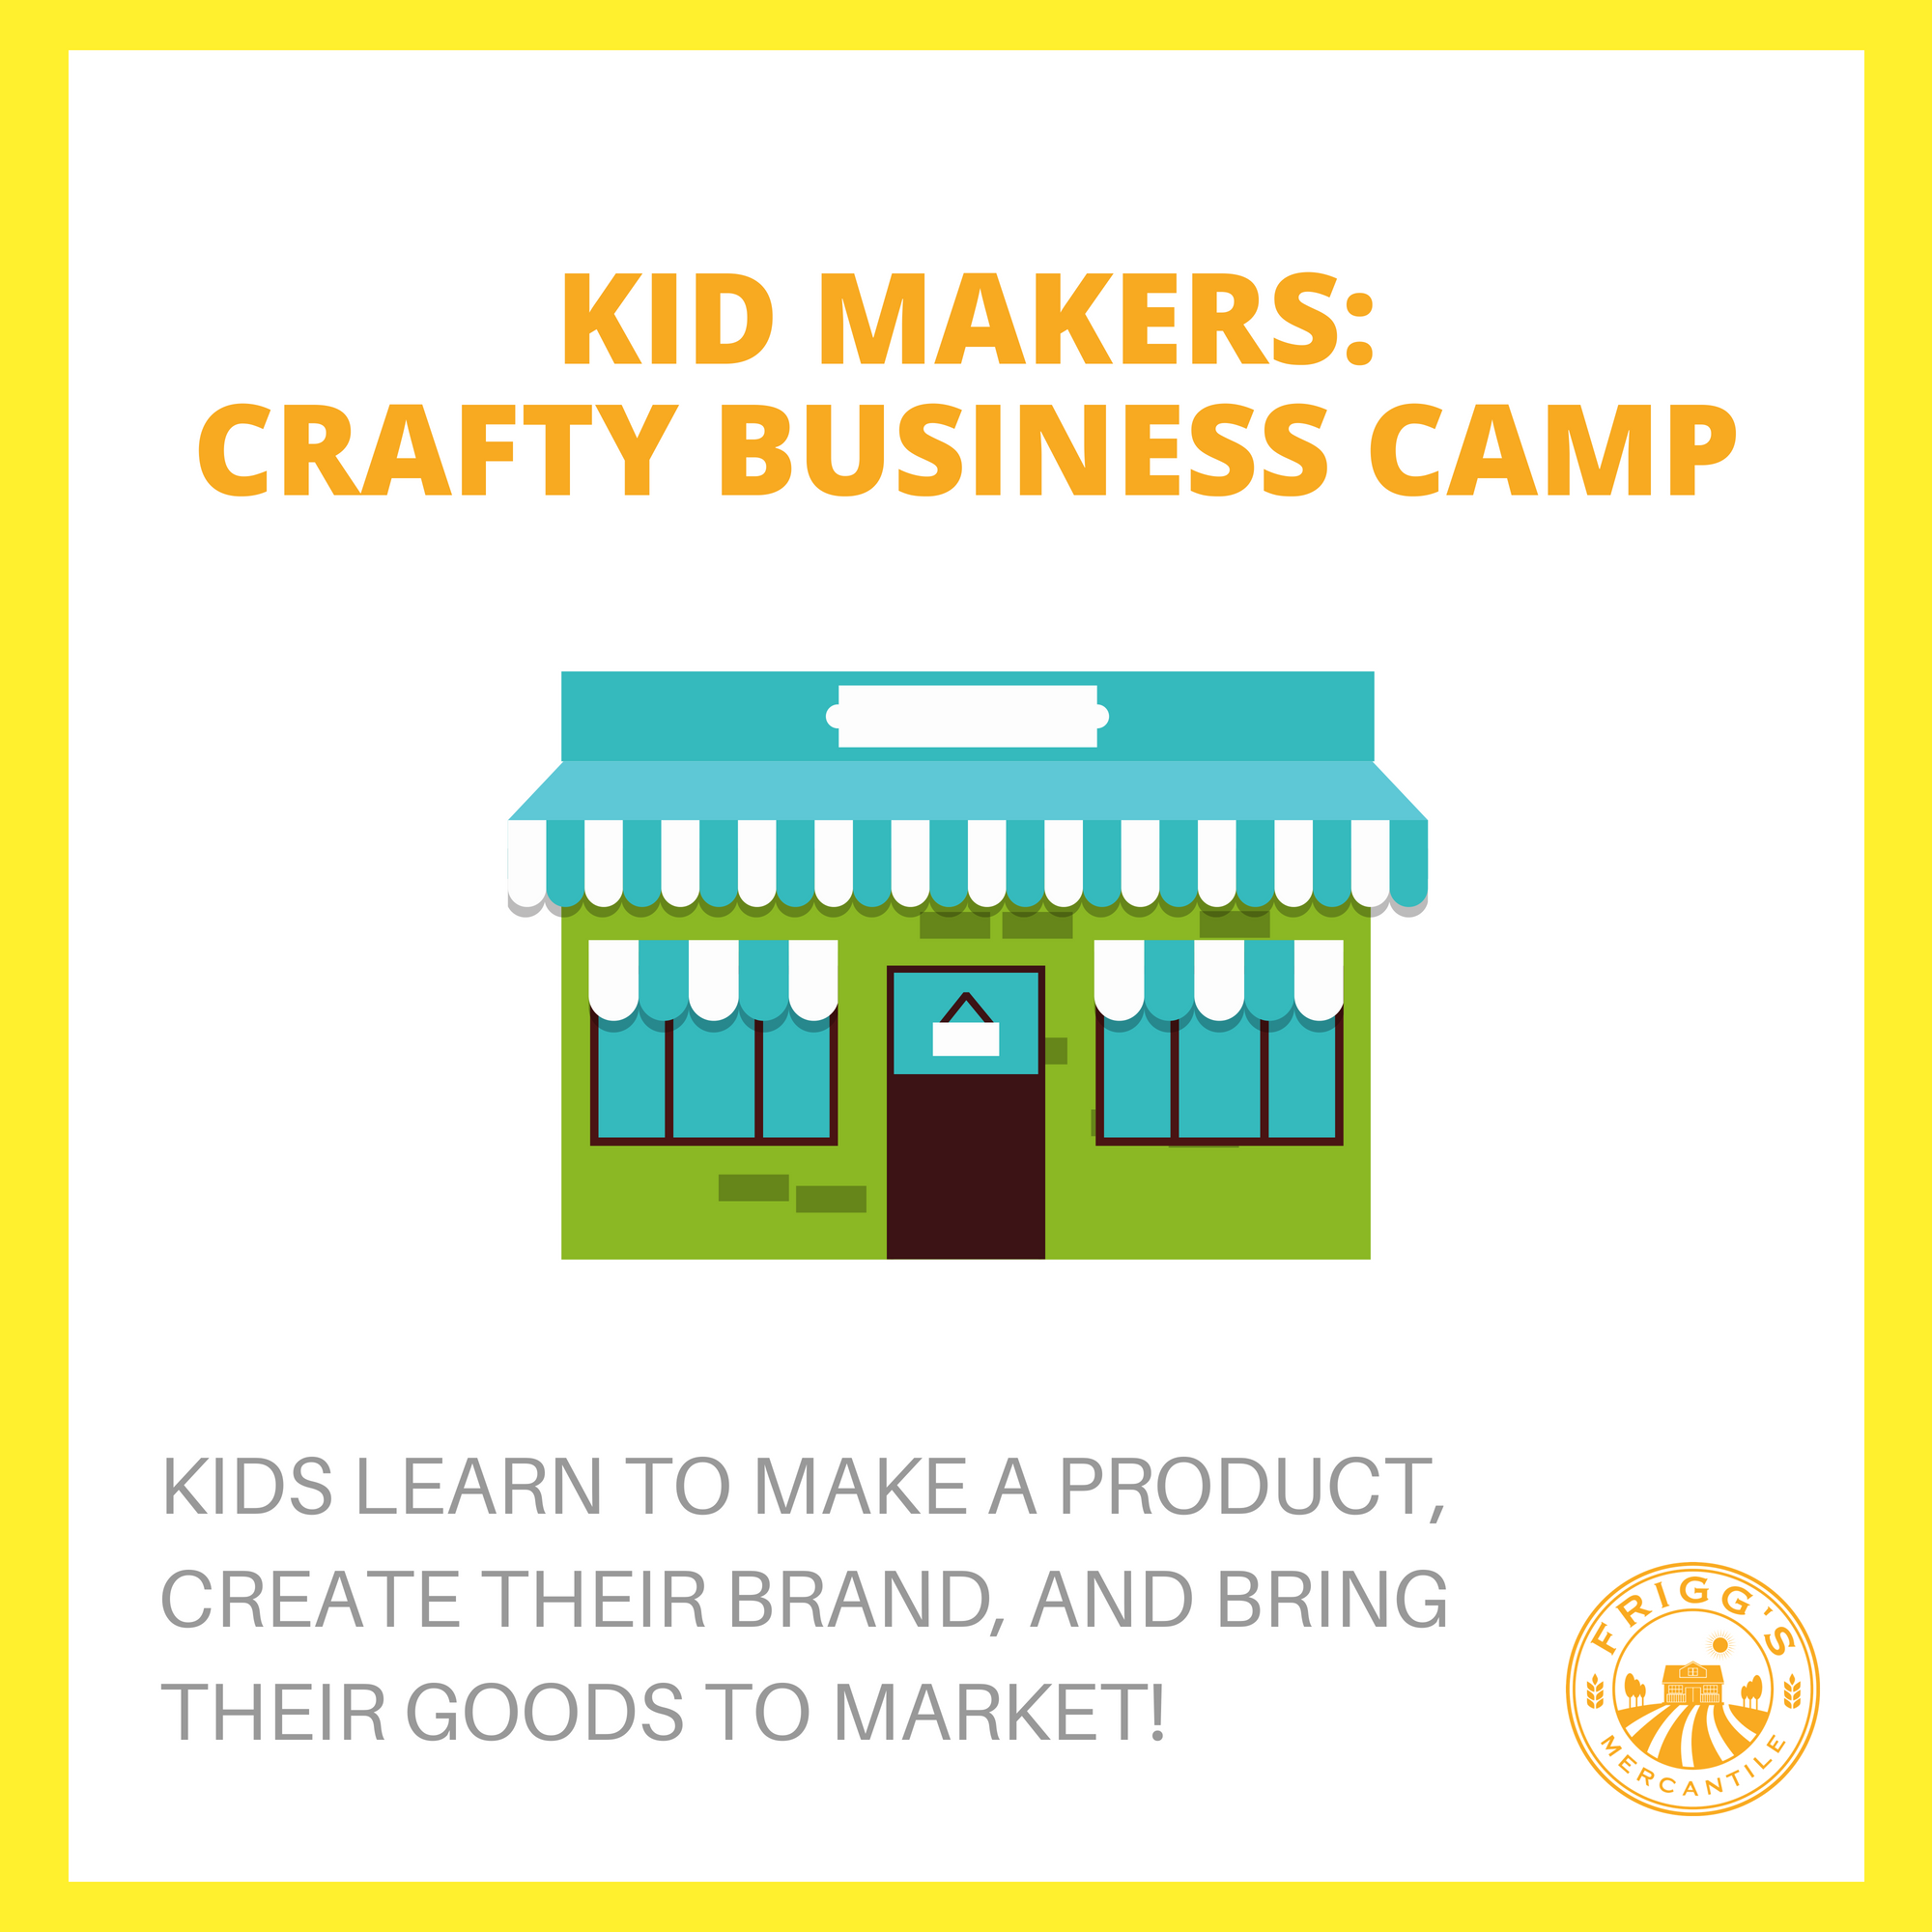 Kid Makers: Crafty Business Camp